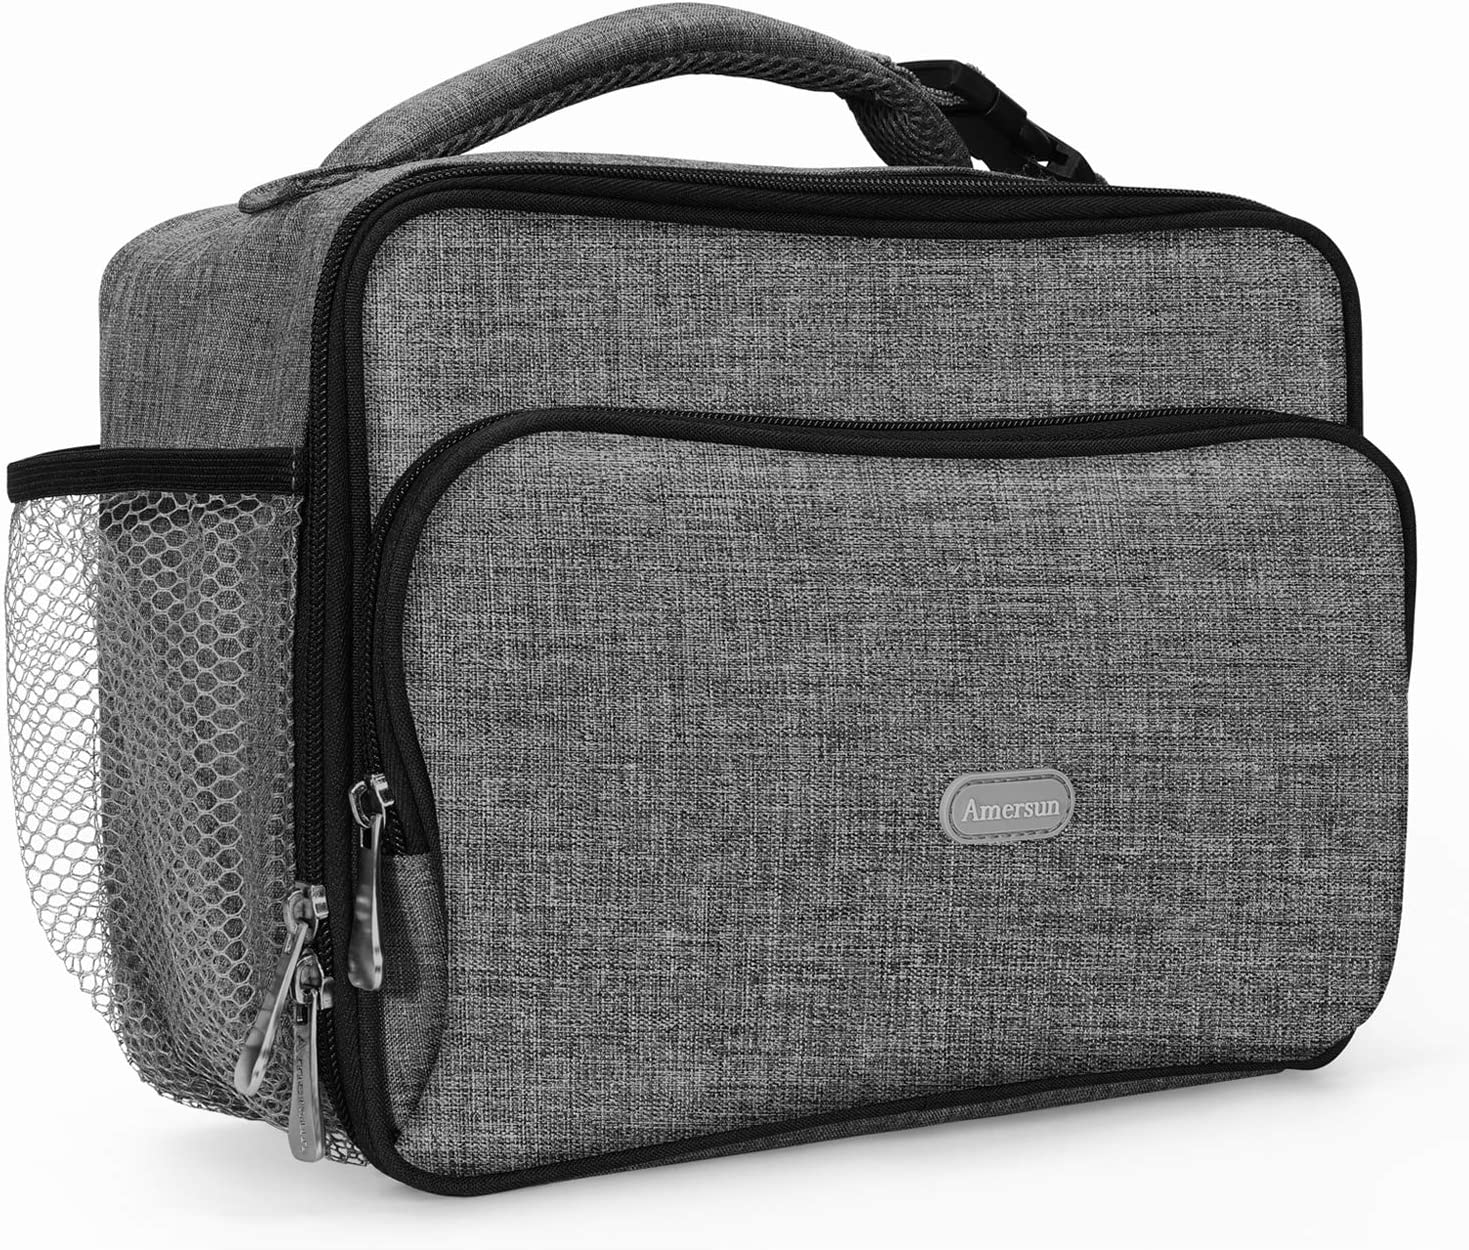 Amersun Lunch Box,Sturdy Insulated Lunch Box with Padded Liner Keep Food Warm Cold for Long Time,Water-resistant Thermal Lunch Cooler for Men Women Aduts Travel Picnic Office(2 Pockets,Grey)